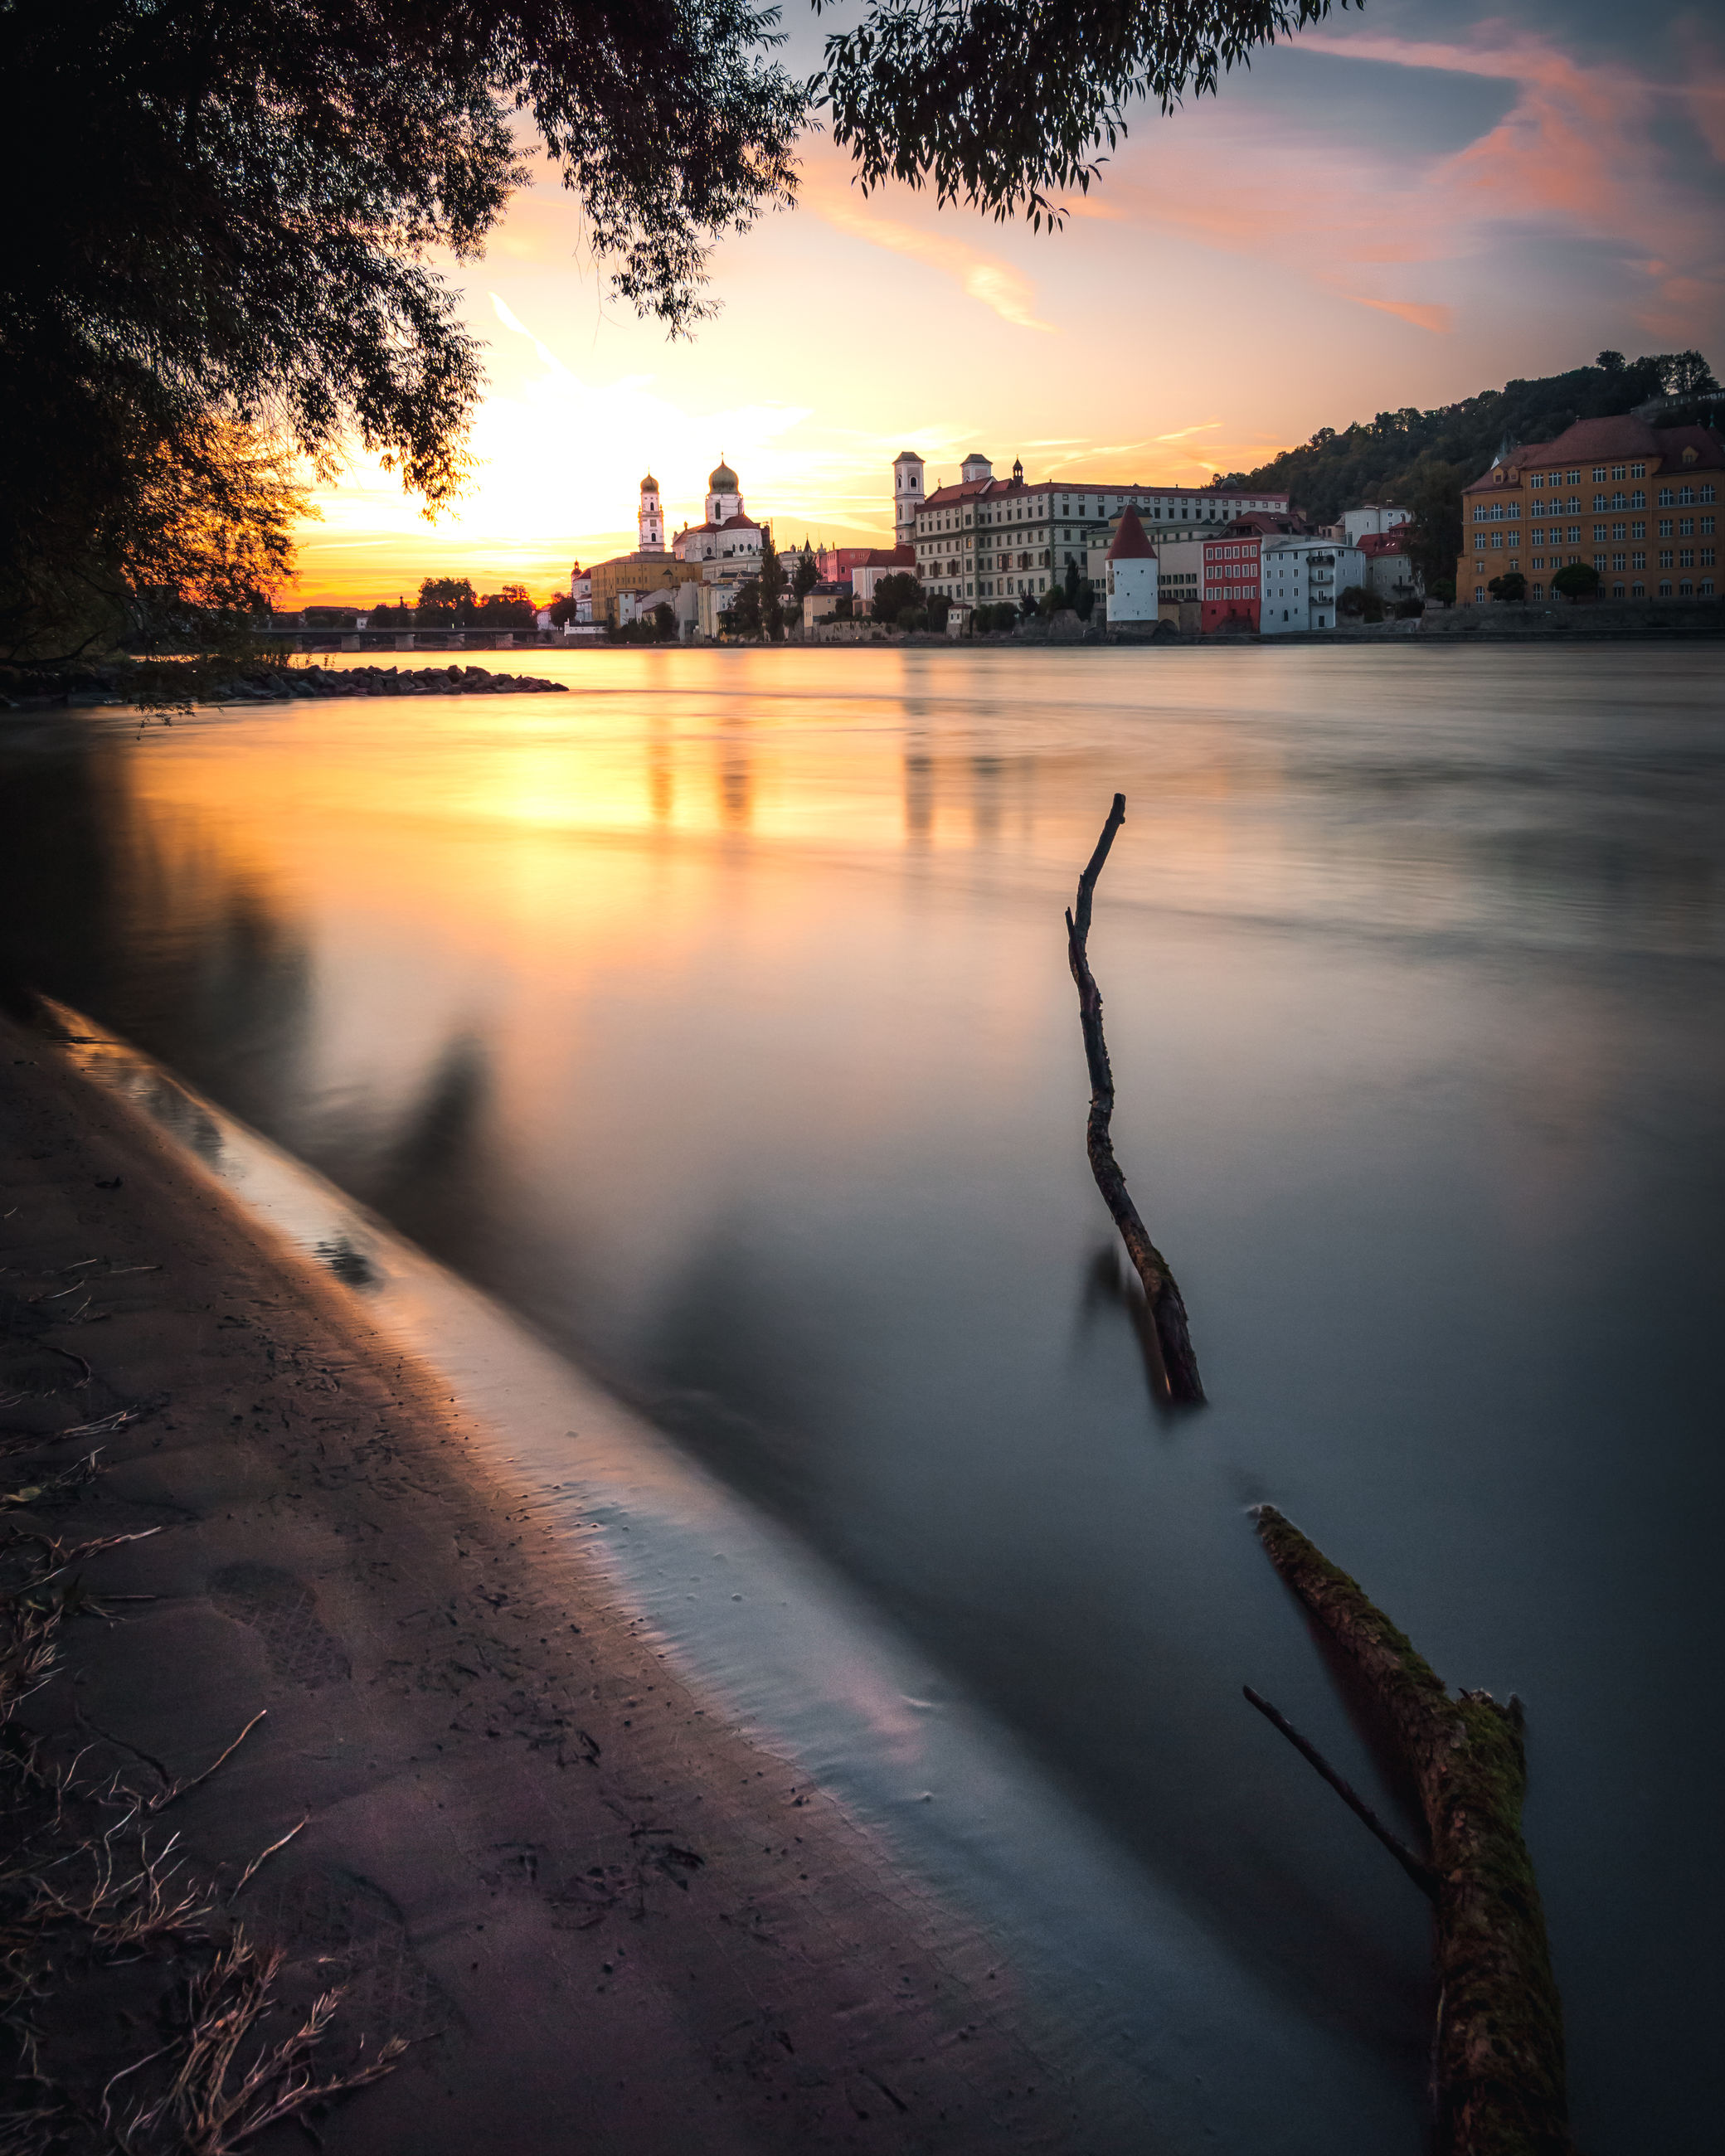 water, sunset, architecture, sky, built structure, building exterior, nature, reflection, river, cloud - sky, long exposure, orange color, building, beauty in nature, no people, city, outdoors, travel destinations, scenics - nature